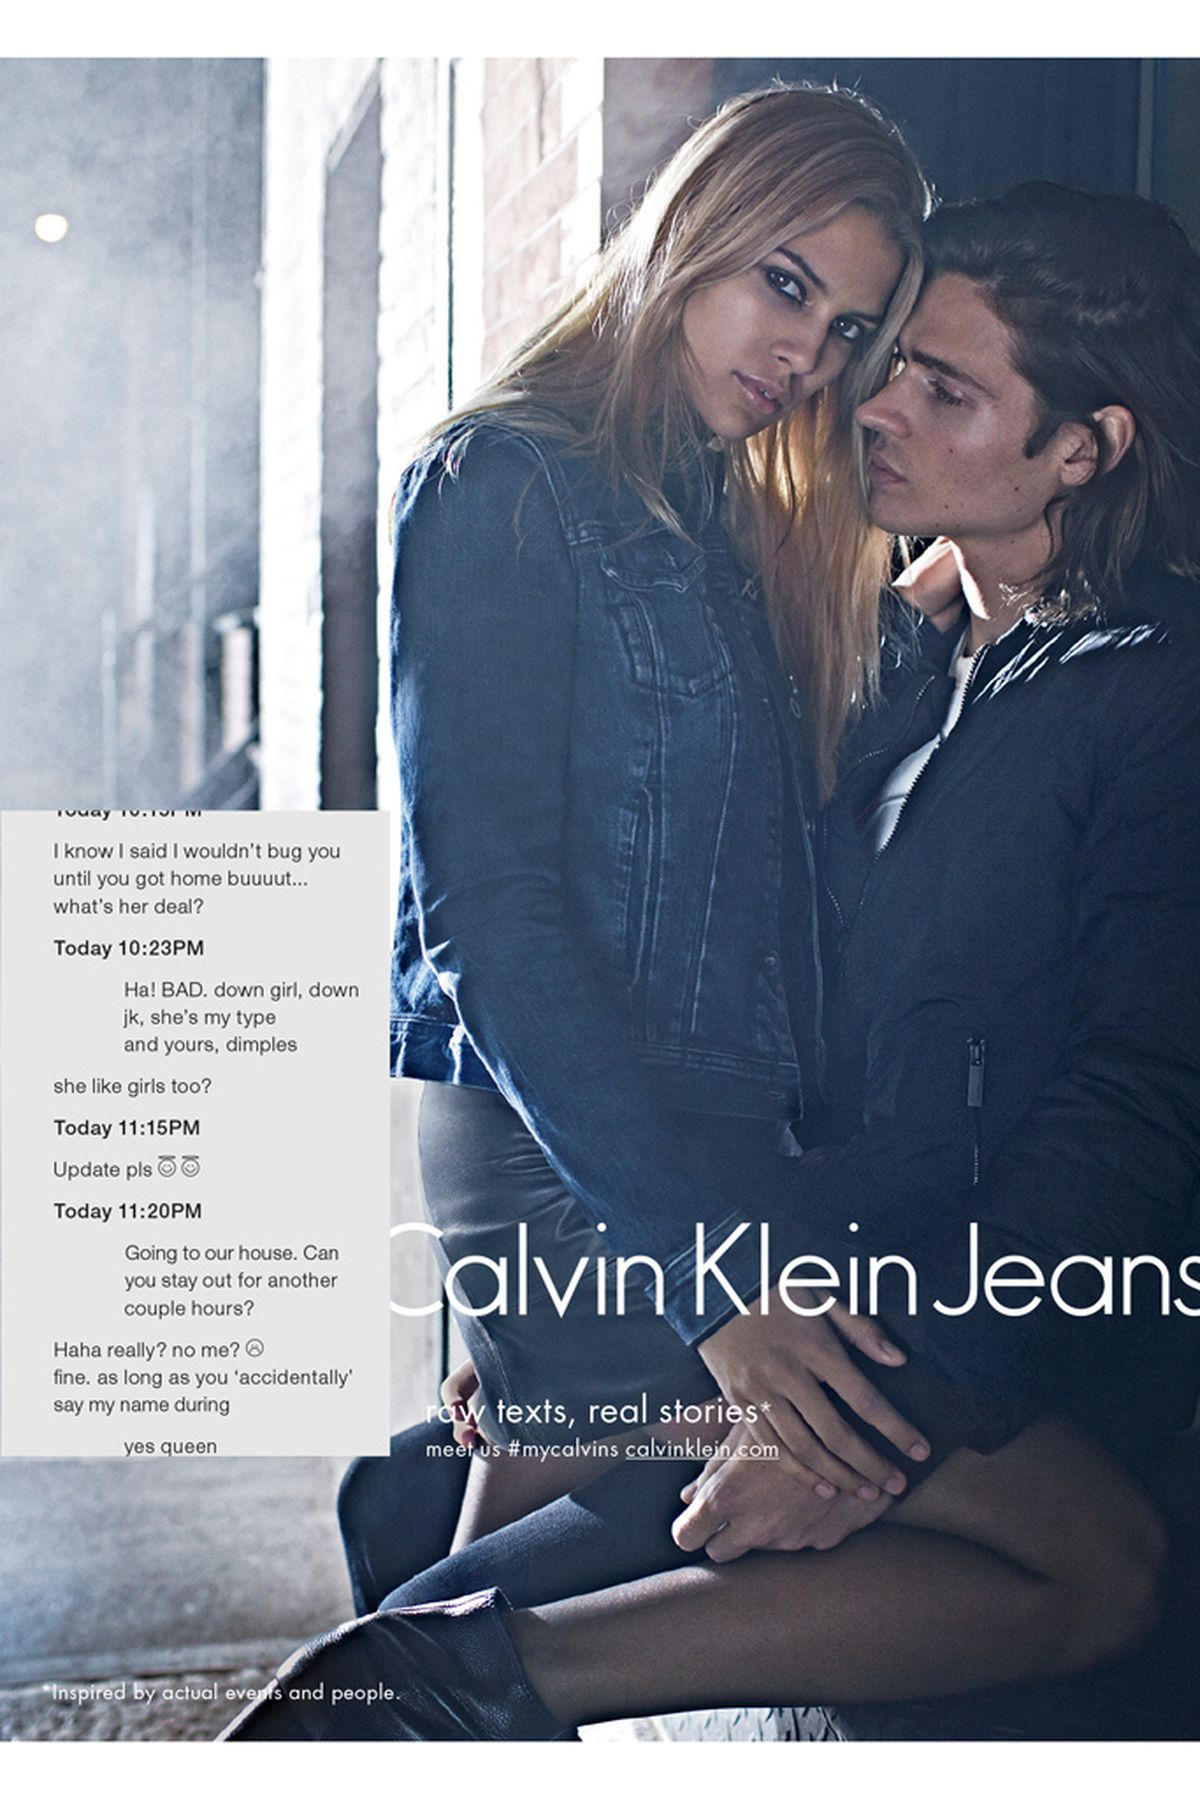 Calvin Klein Jeans Partners With Tinder Racked